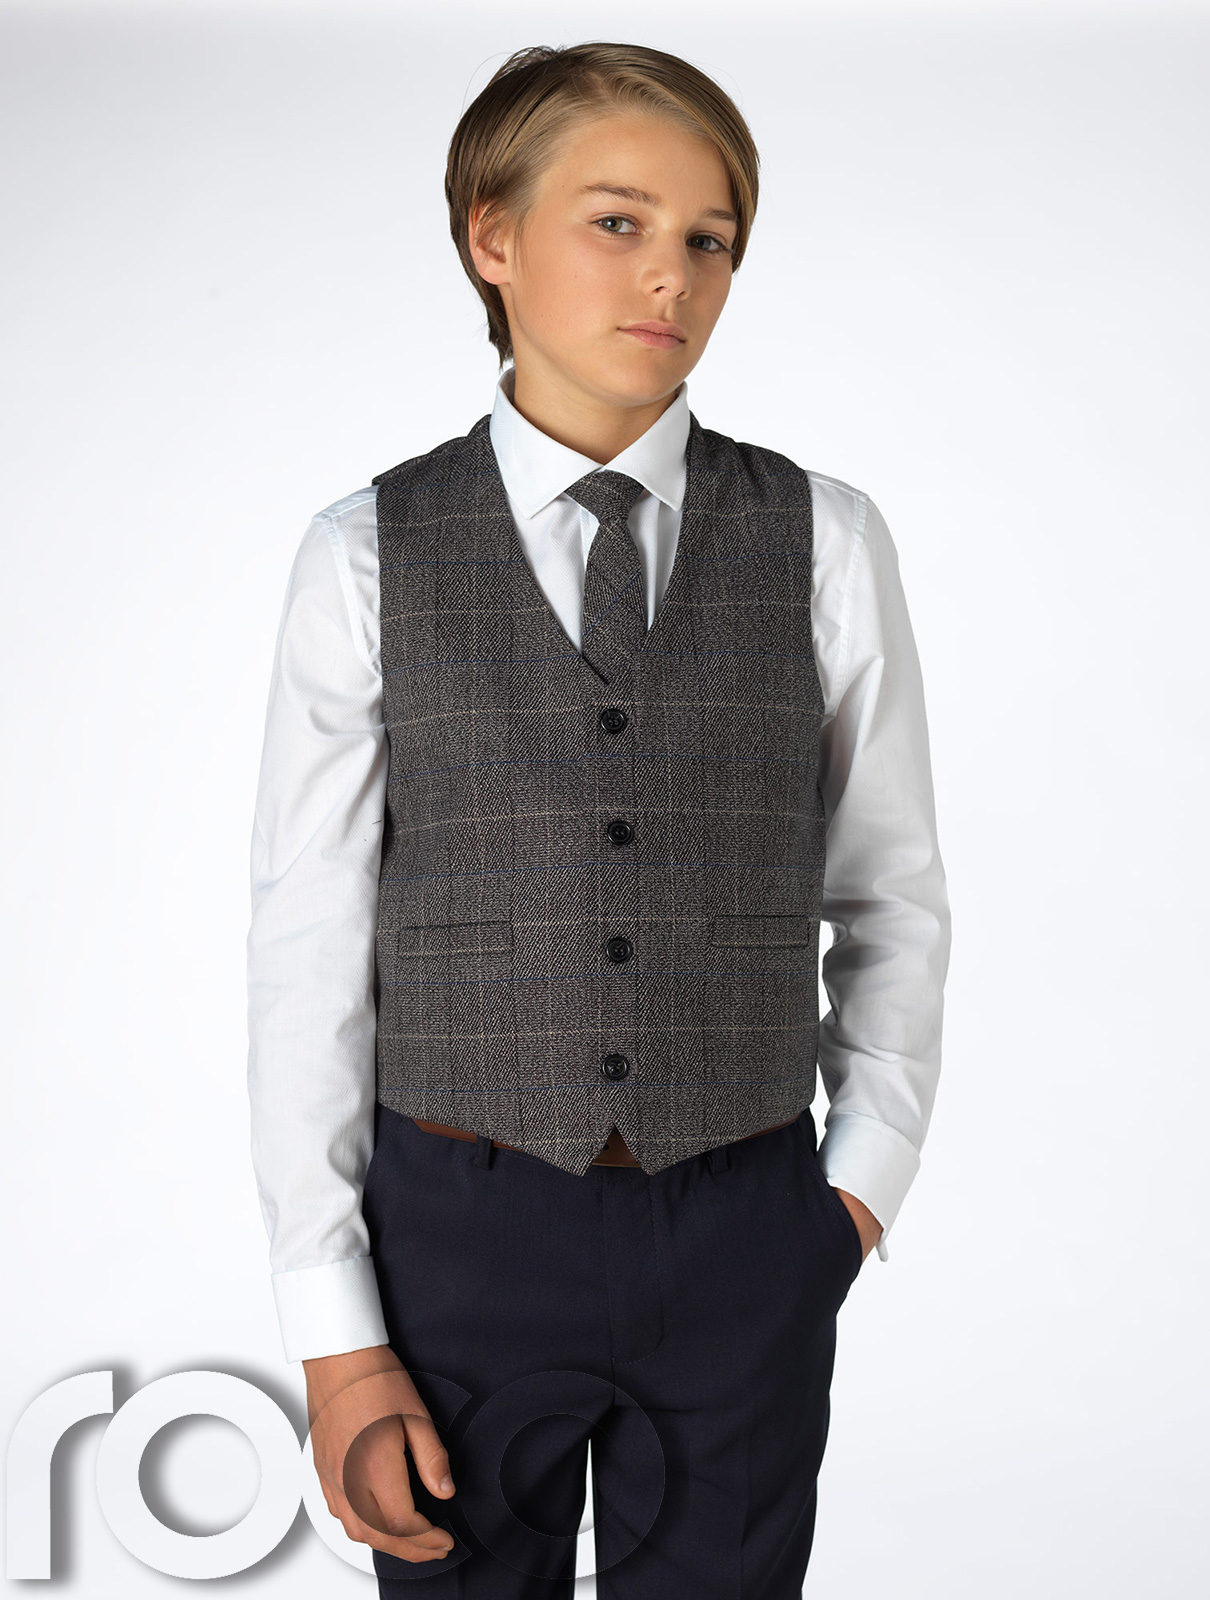 Men's Check Waistcoats A 3 piece suit isn't complete without a waistcoat, it is the stylish finish to a tailored suit. Match a check waistcoat with a check suit, or .